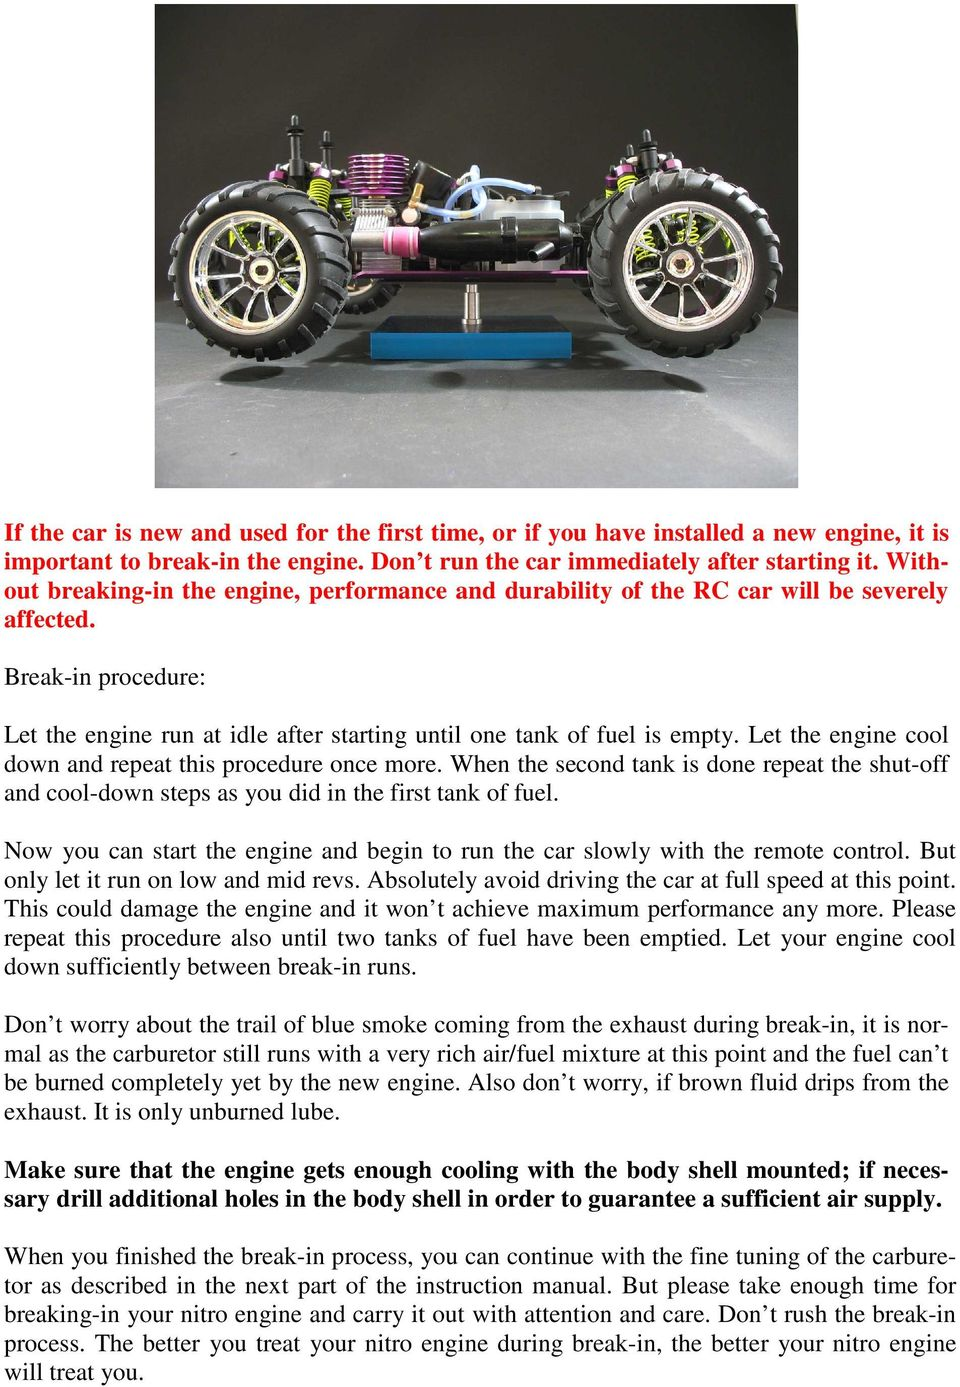 Seben-Racing  Instructions for RC cars with nitro engine  On